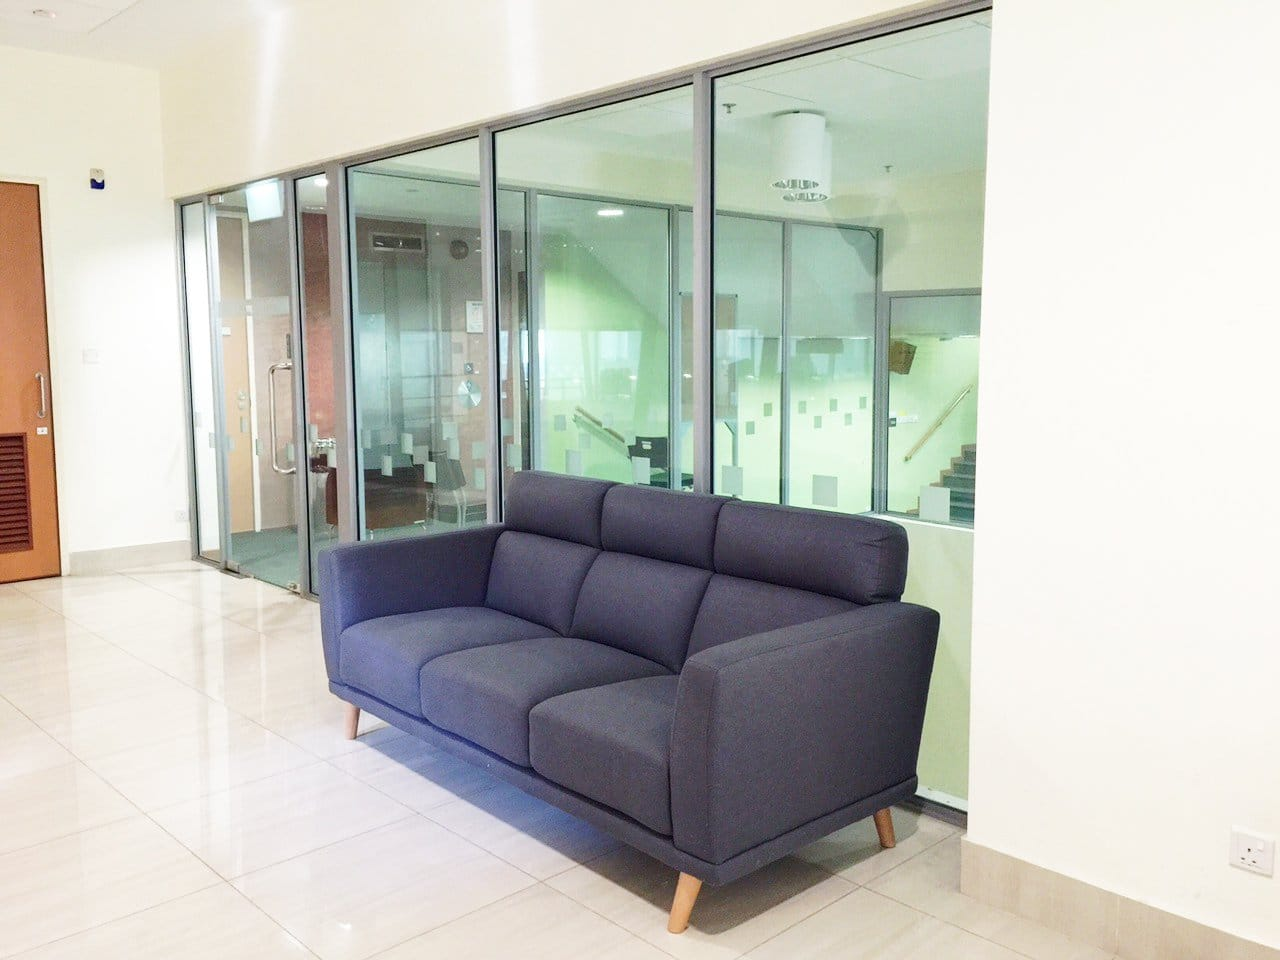 National Institute of Education (Singapore) - 1 Nanyang Walk | Product Seen: [Neuron 3 Seater Sofa – Fabric]<br />